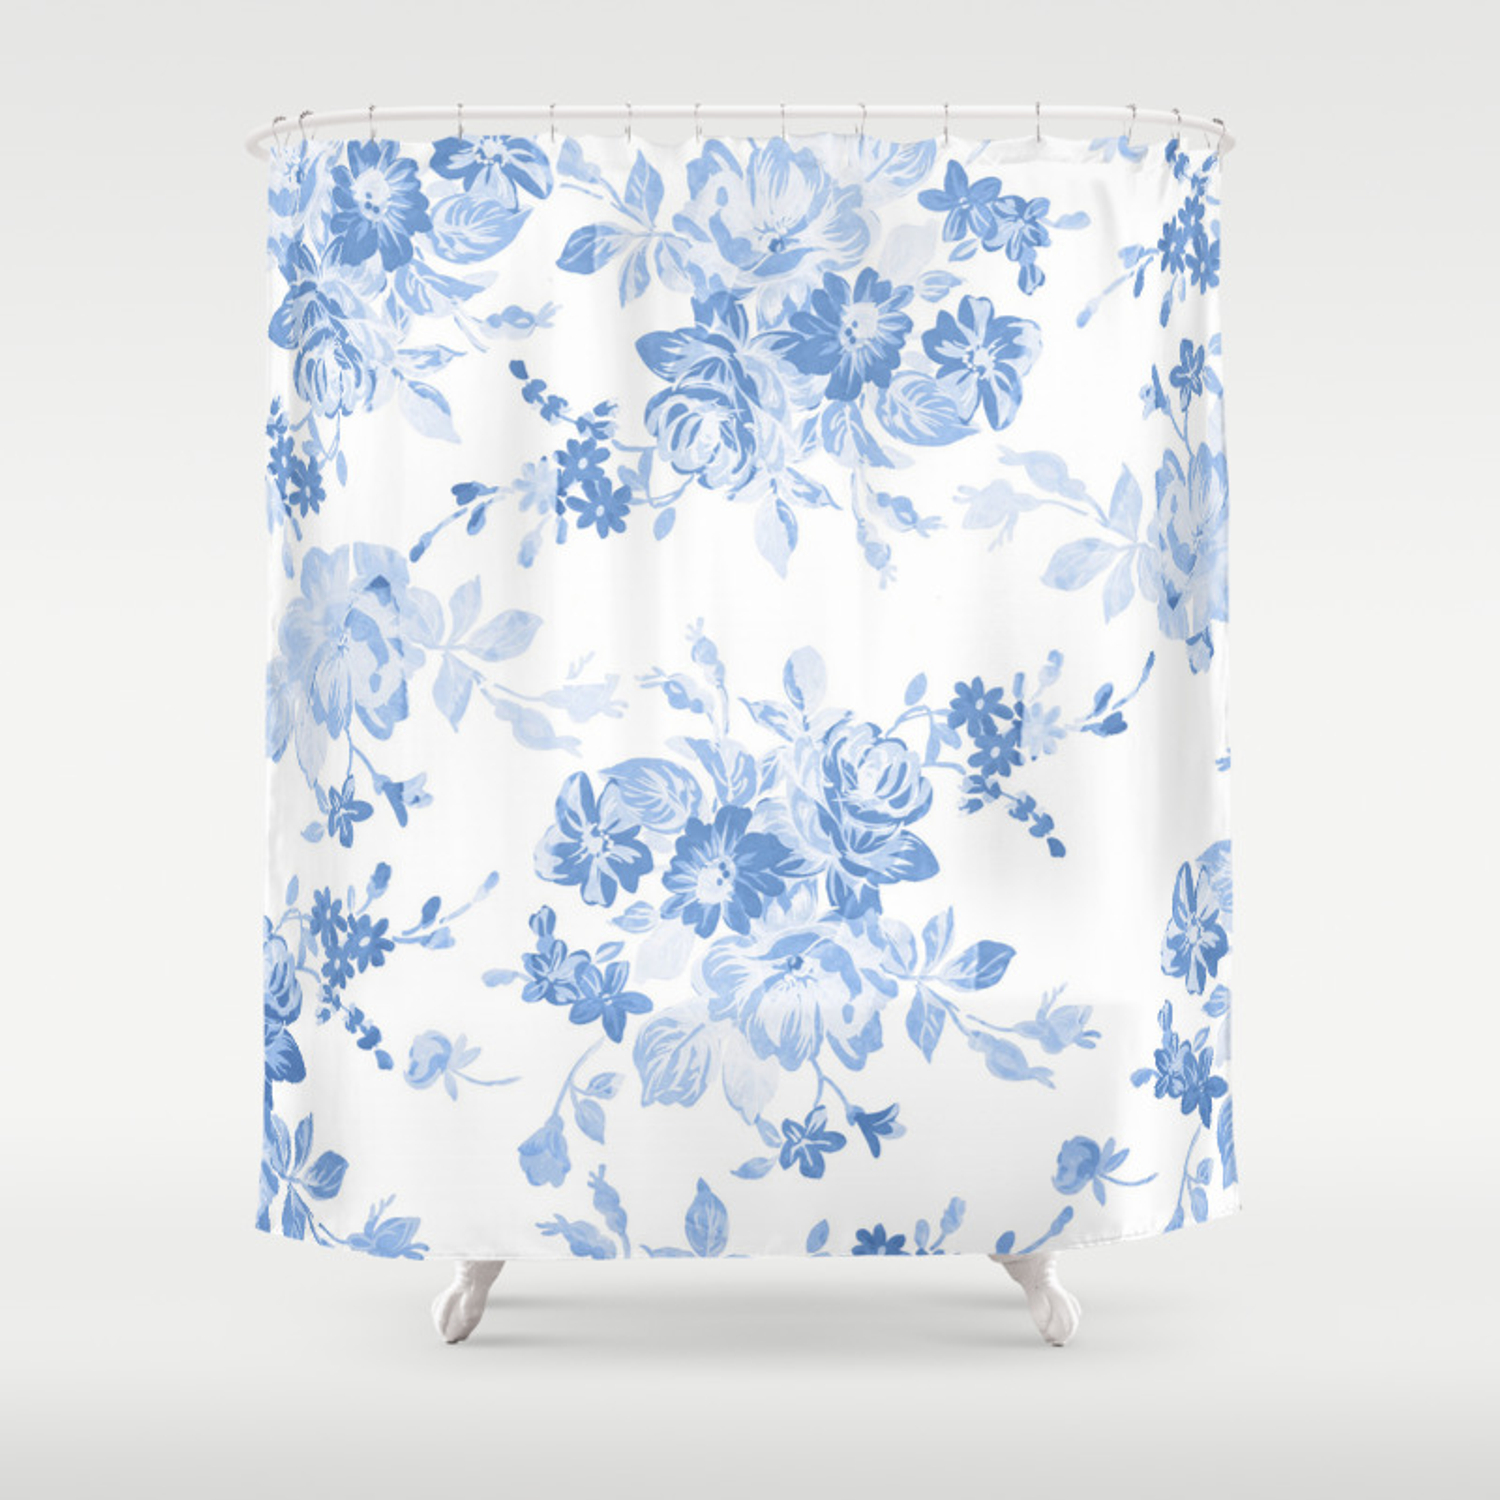 Modern Navy Blue White Watercolor Elegant Floral Shower Curtain By Pink Water Society6